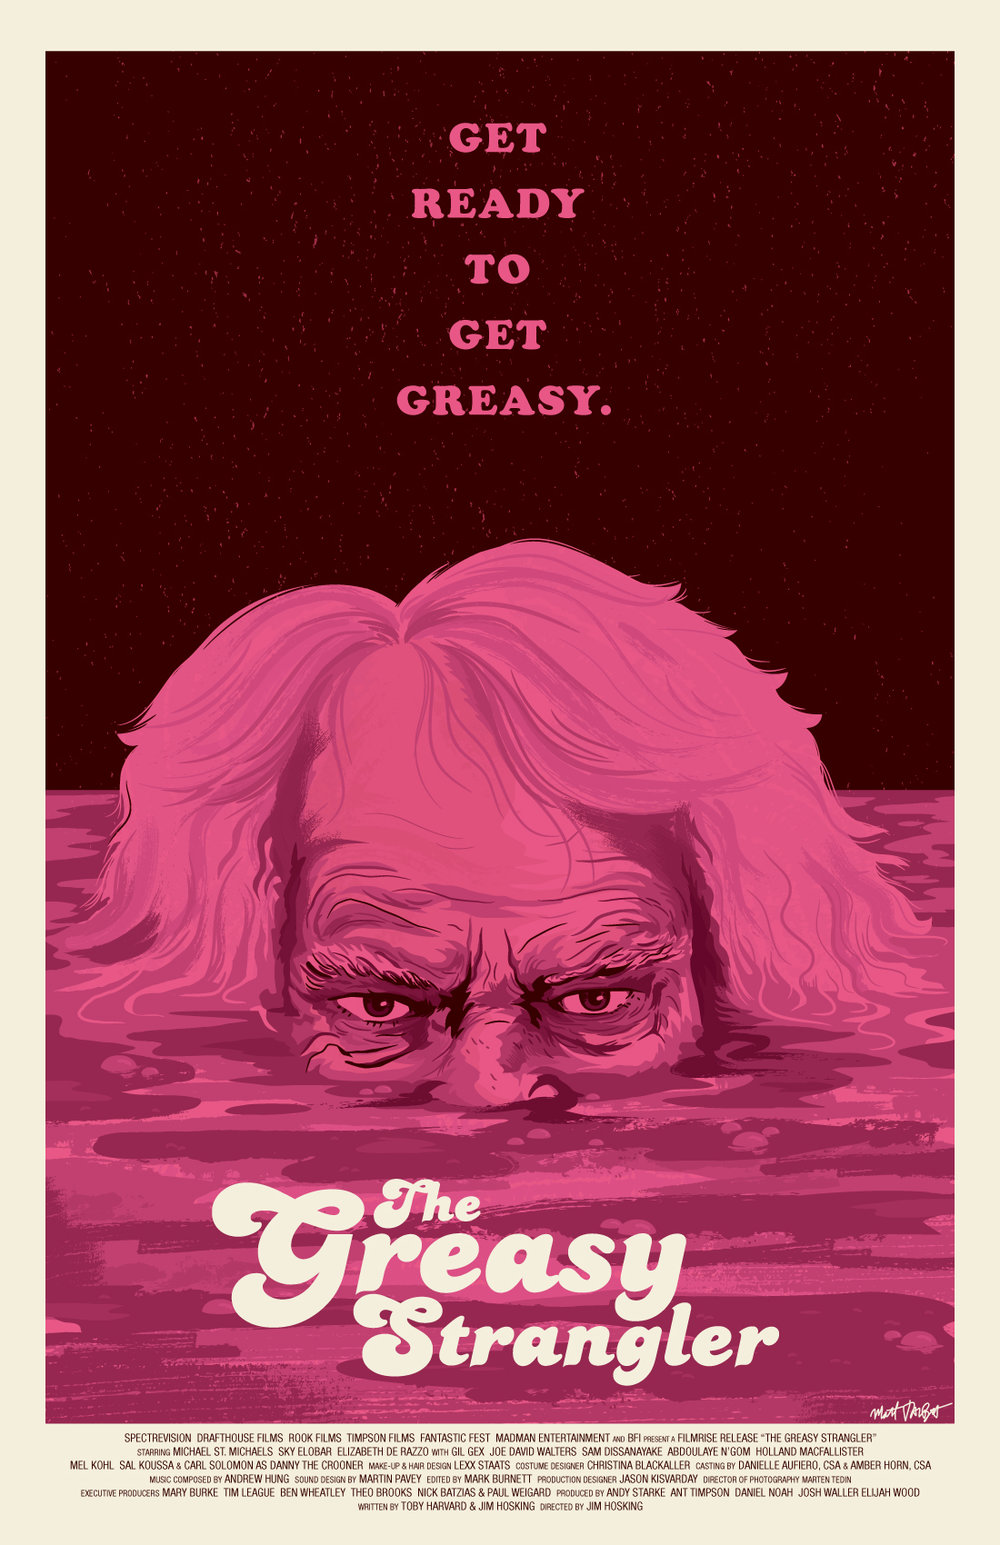 The Greasy Strangler Poster by Matt Talbot